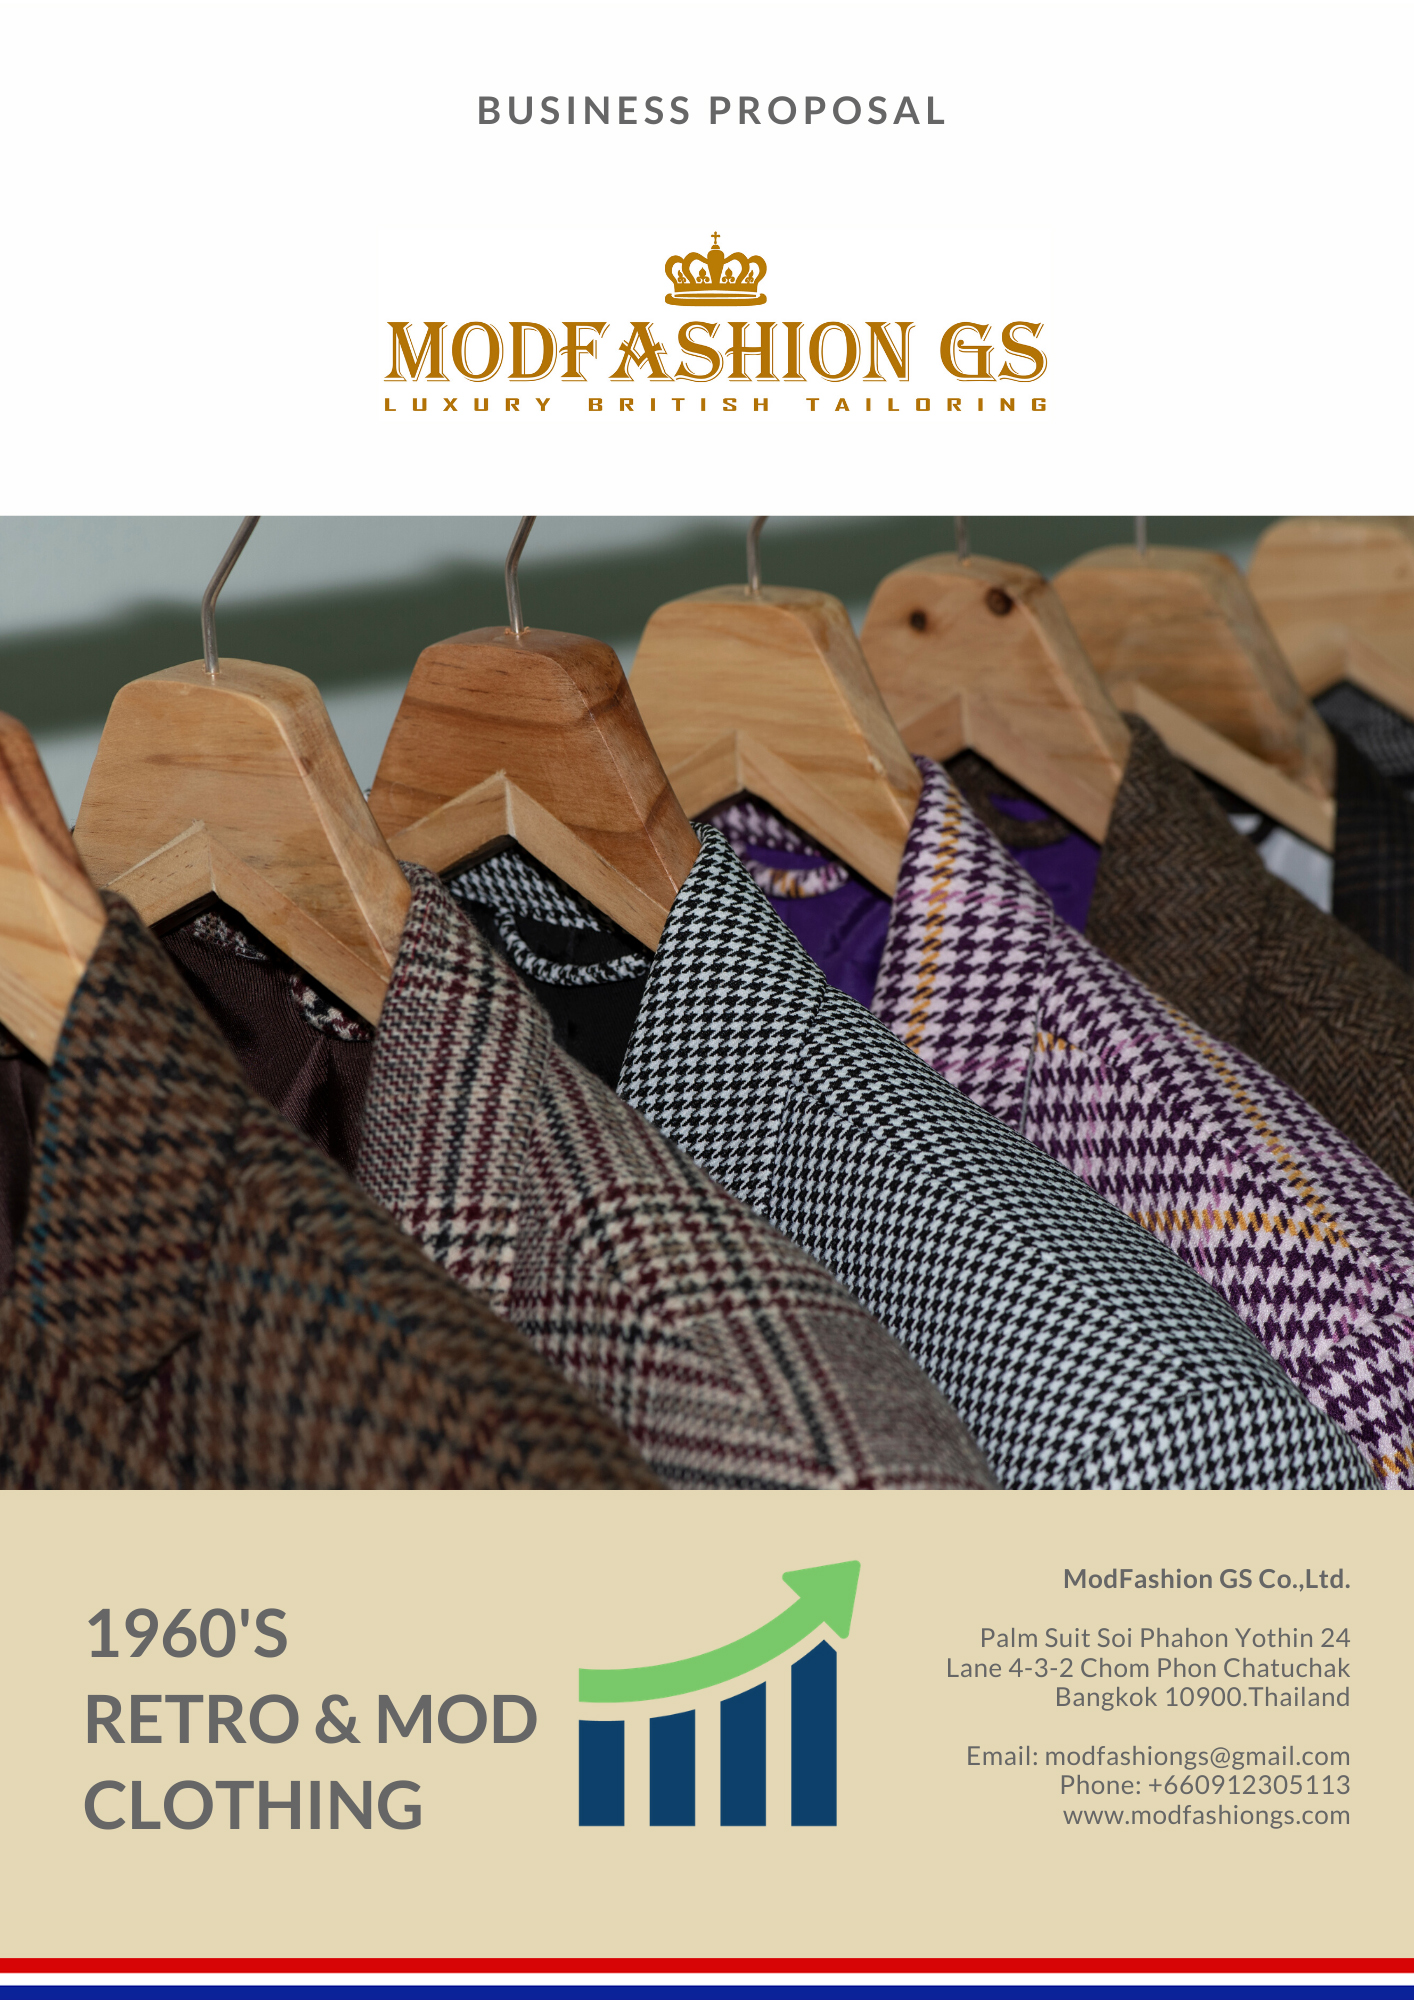 modfashiongs-wholesale-proposal-01.jpg